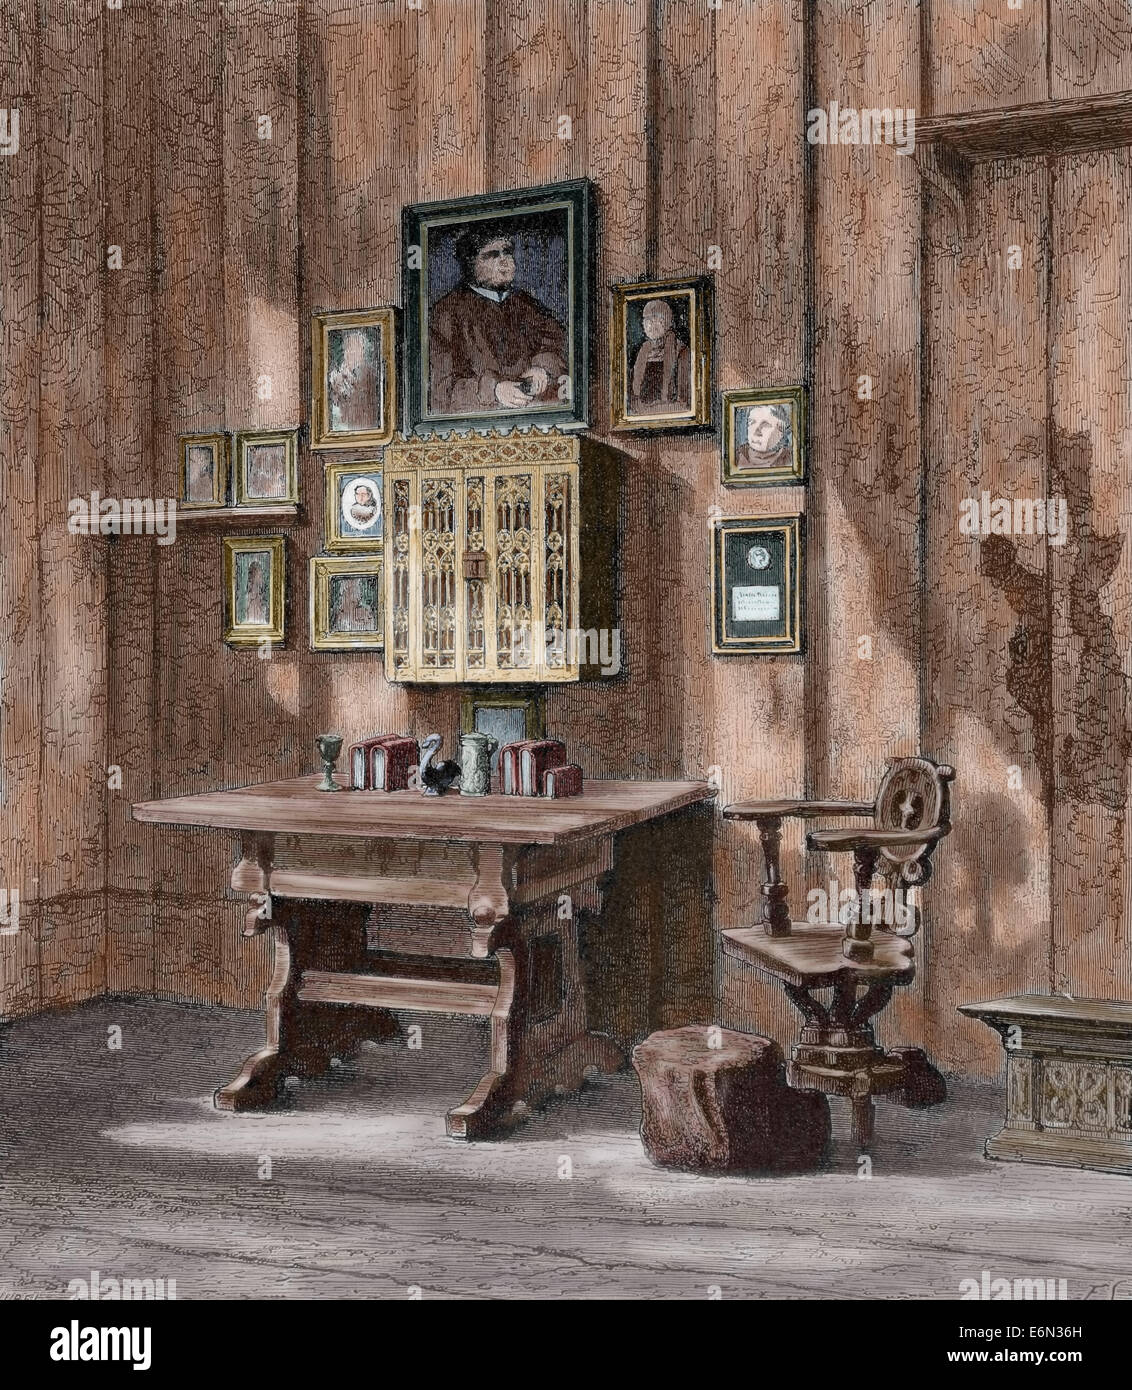 Martin Luther (1483-1546). German reformer. Luther's room at Wartburg. Engraving by Hurel. Colored. - Stock Image